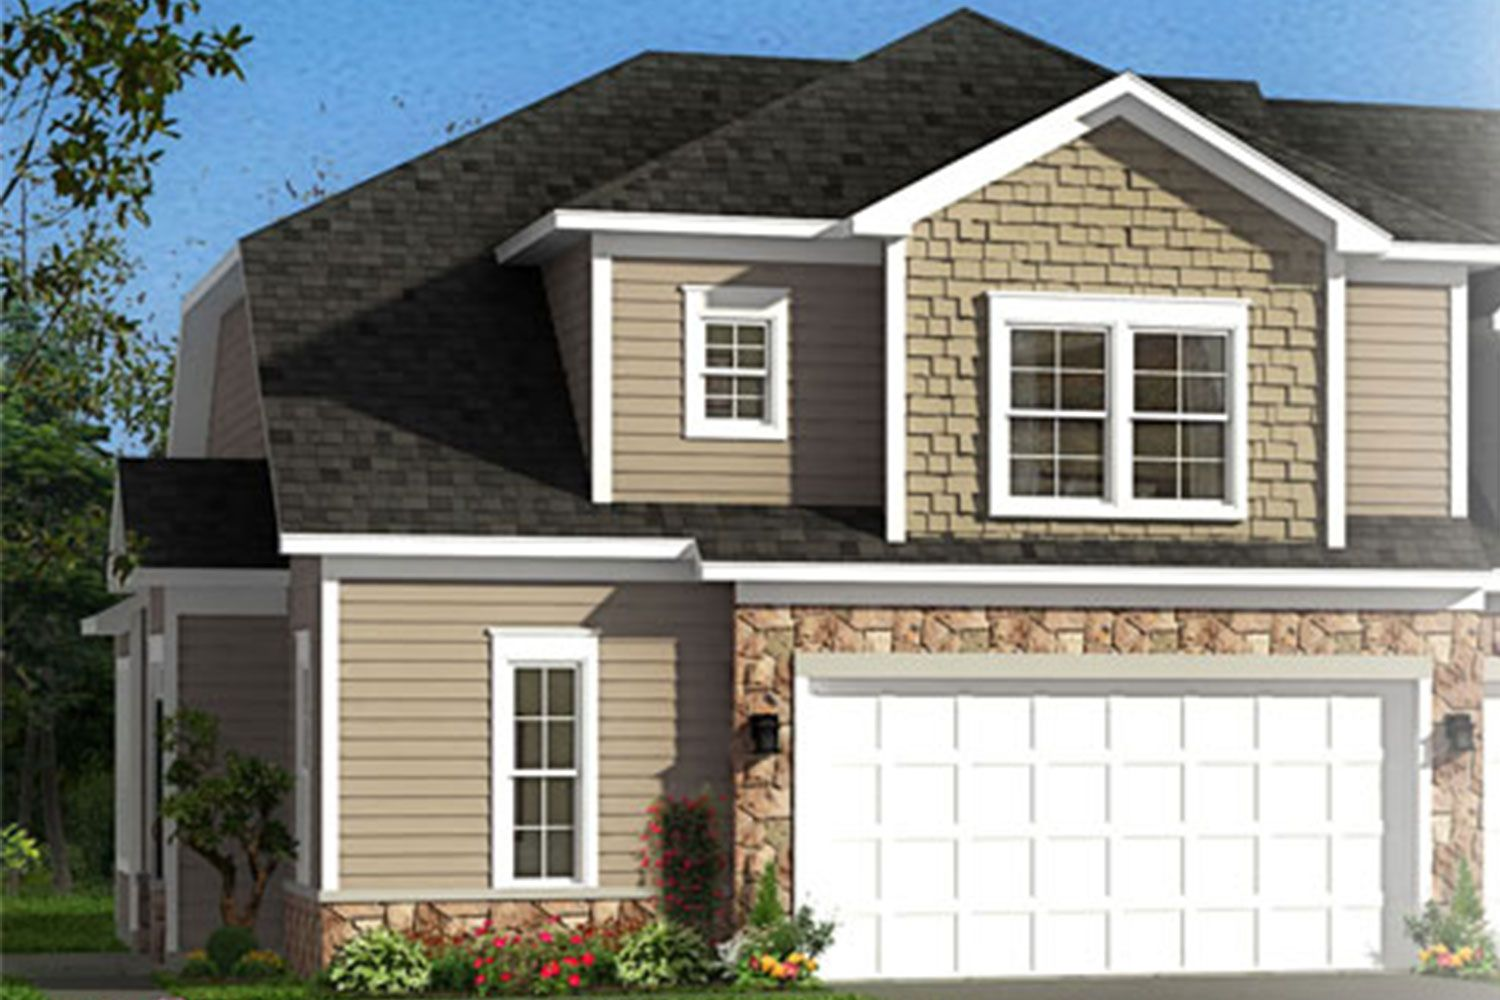 Real Estate at 20146 O'Neals Place, Hagerstown in Washington County, MD 21742